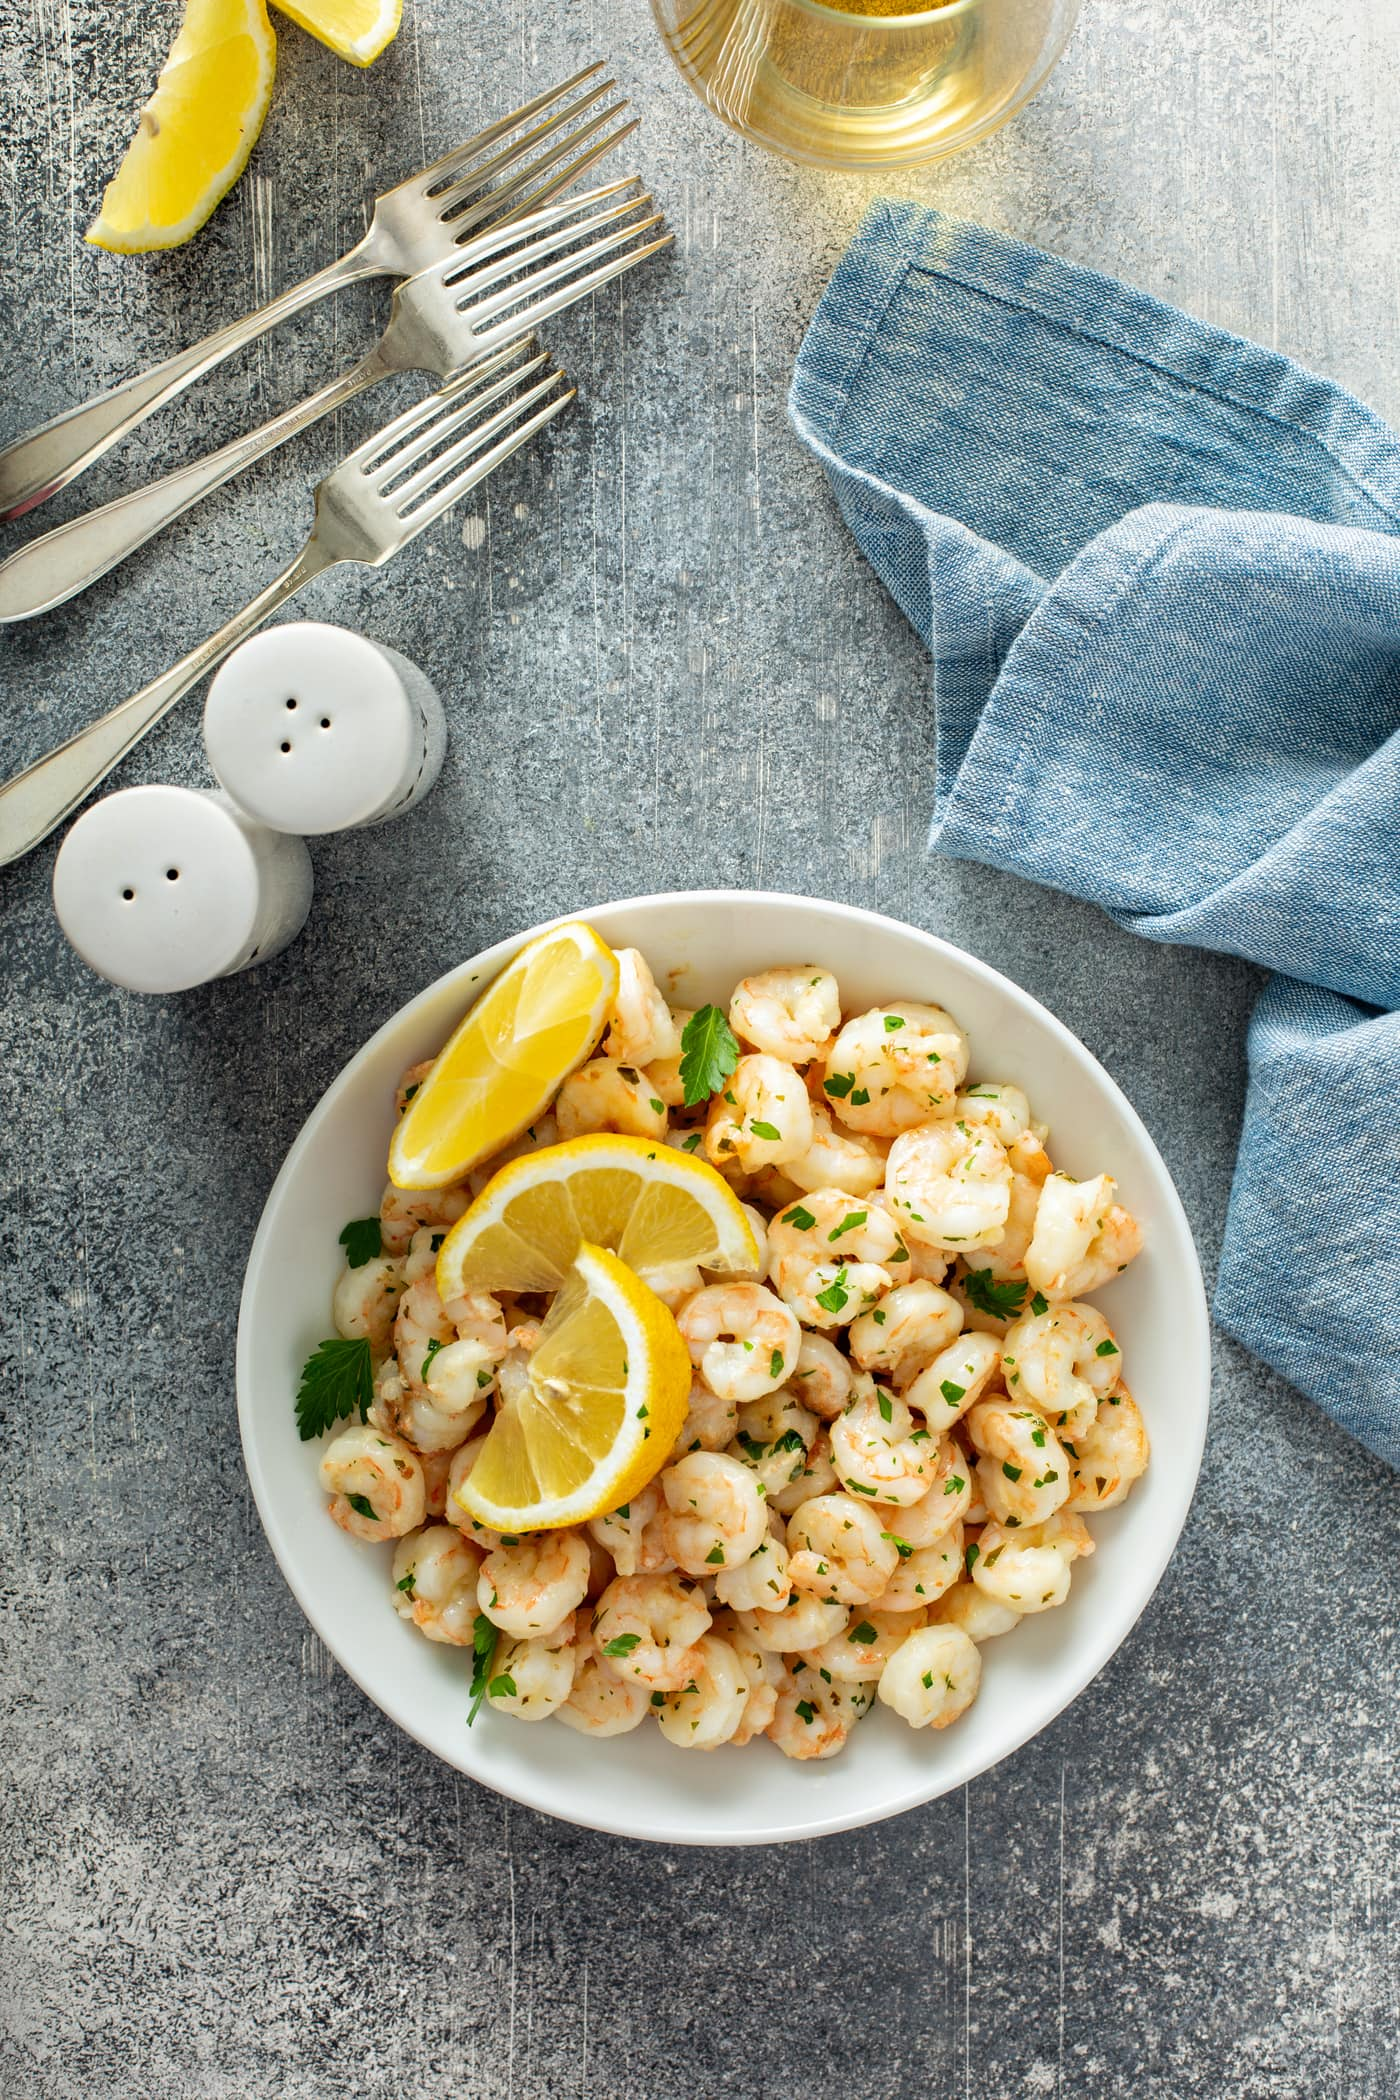 A serving plate of lemon garlic shrimp. There are three lemon wedges on top of the shrimp and fresh parsley is sprinkled over the dish. There is a blue napkin, three forks and salt and pepper shakers on the table.